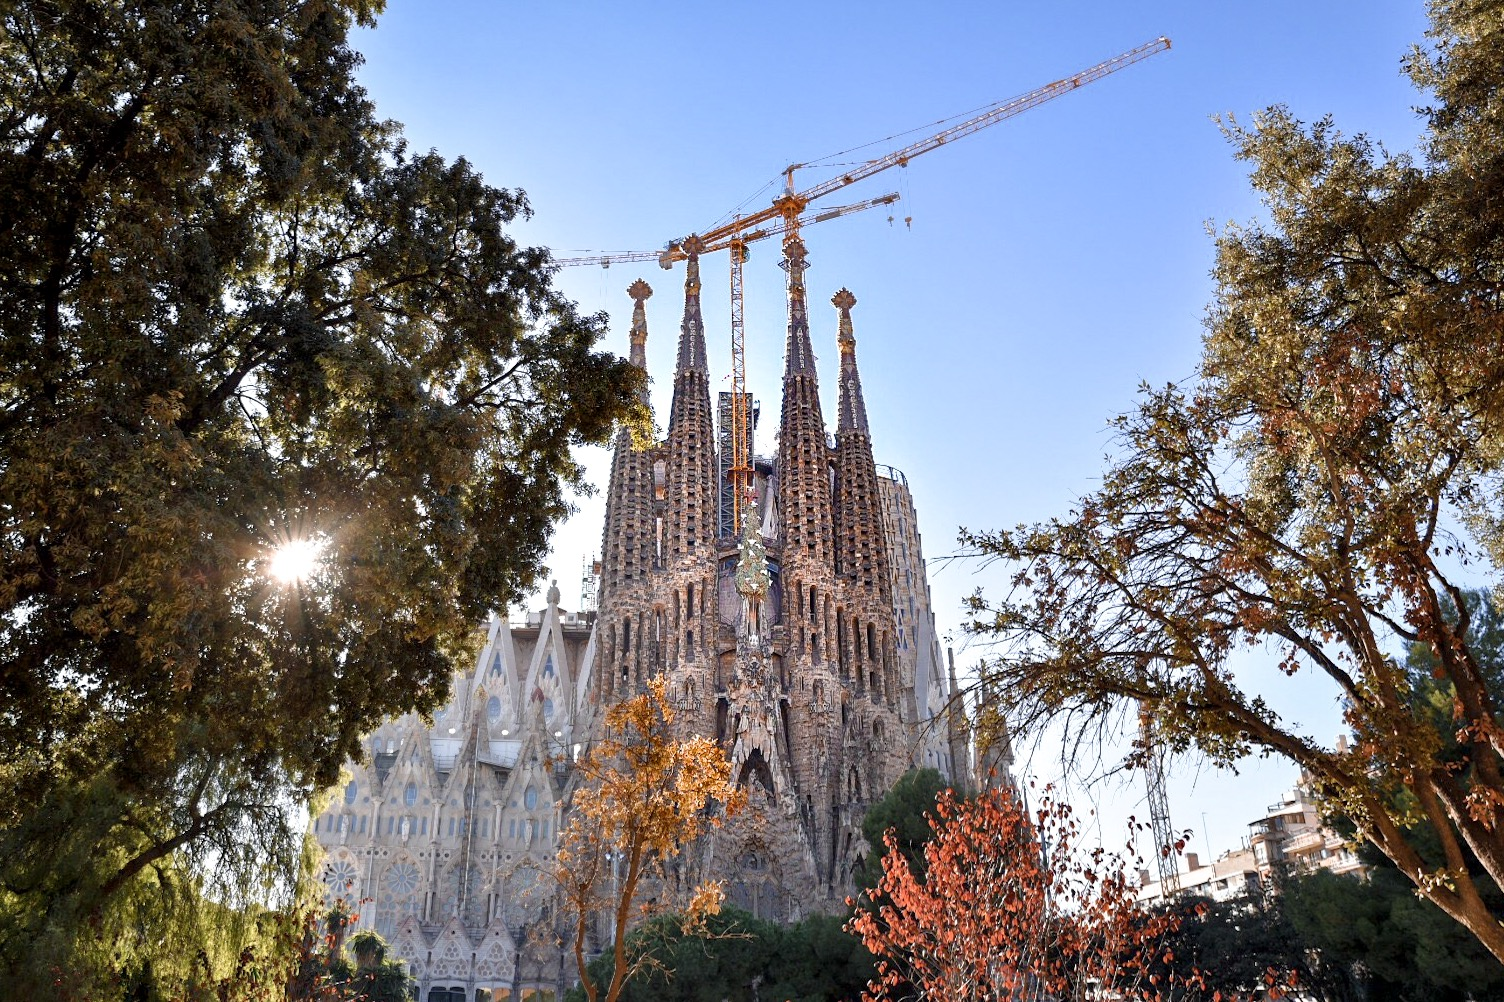 La Sagrada Familia Church in Barcelona